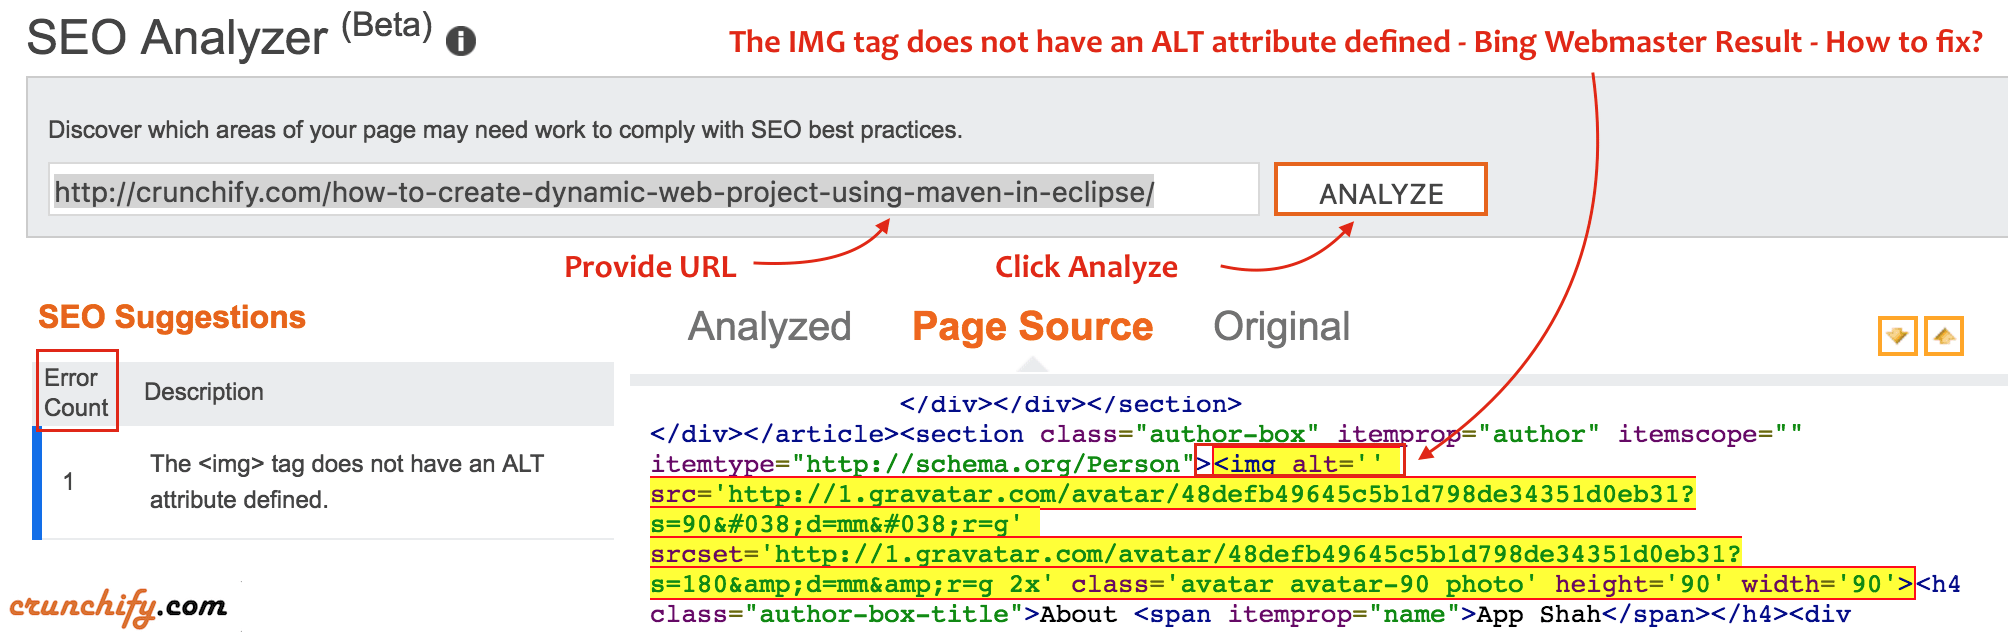 The IMG tag does not have an ALT attribute defined - Bing Webmaster Result - How to fix